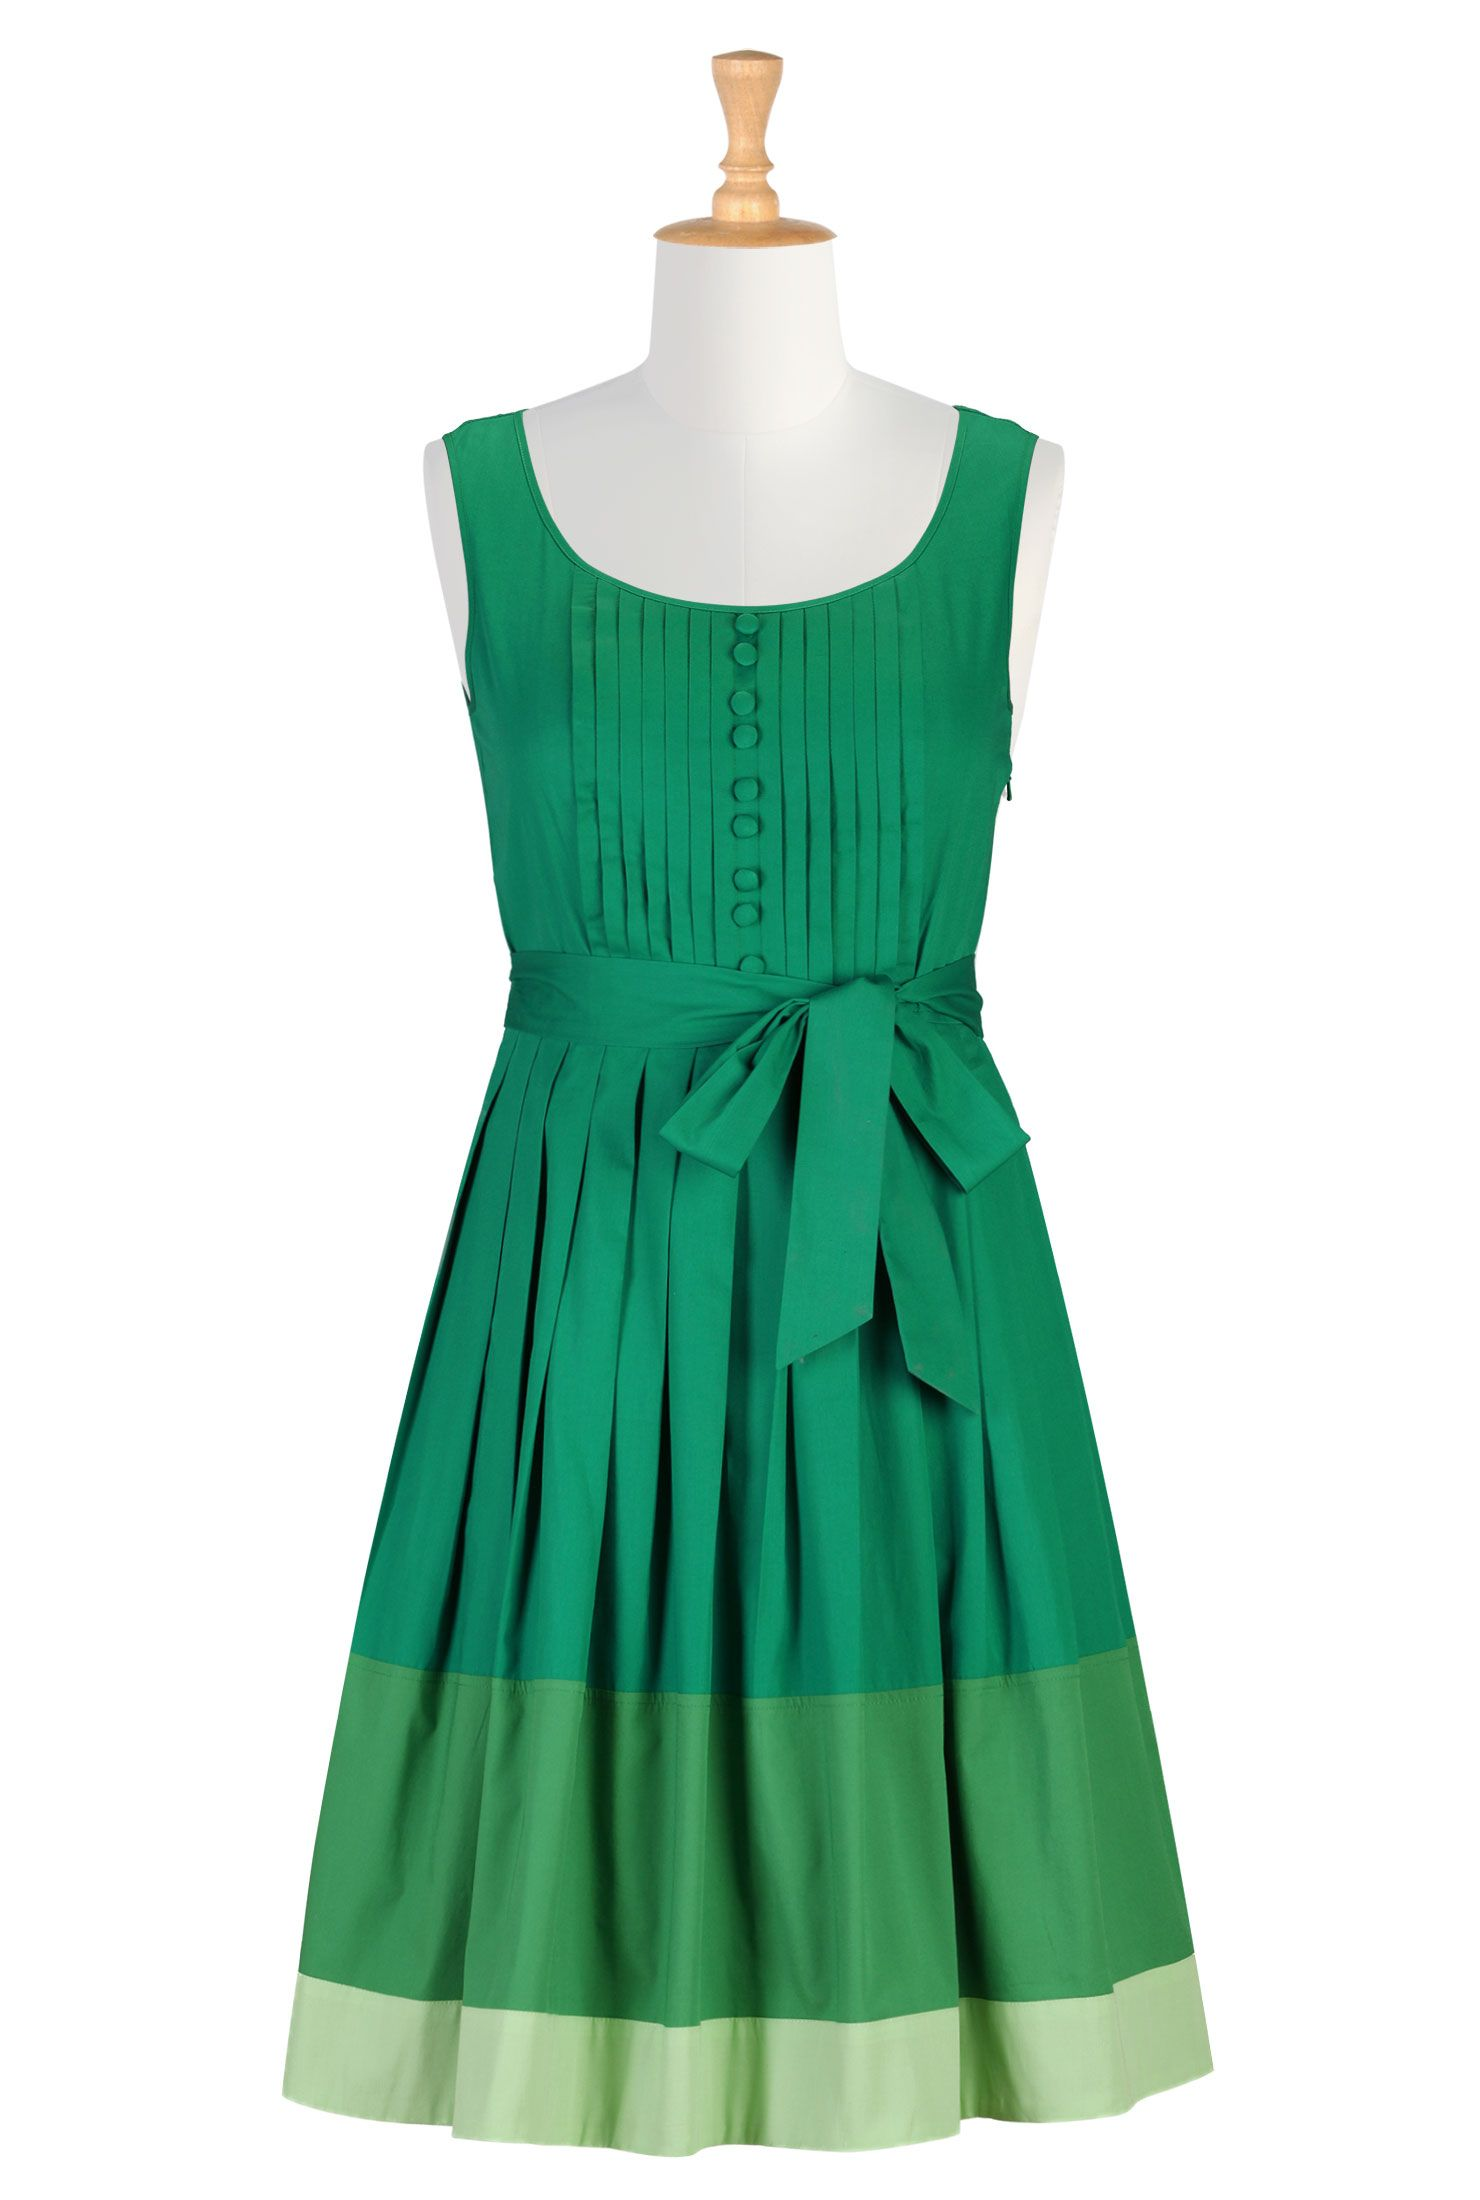 Trendy Womens Clothing Online: Dress Clothes For Women, Catalog Clothing Shop Womens